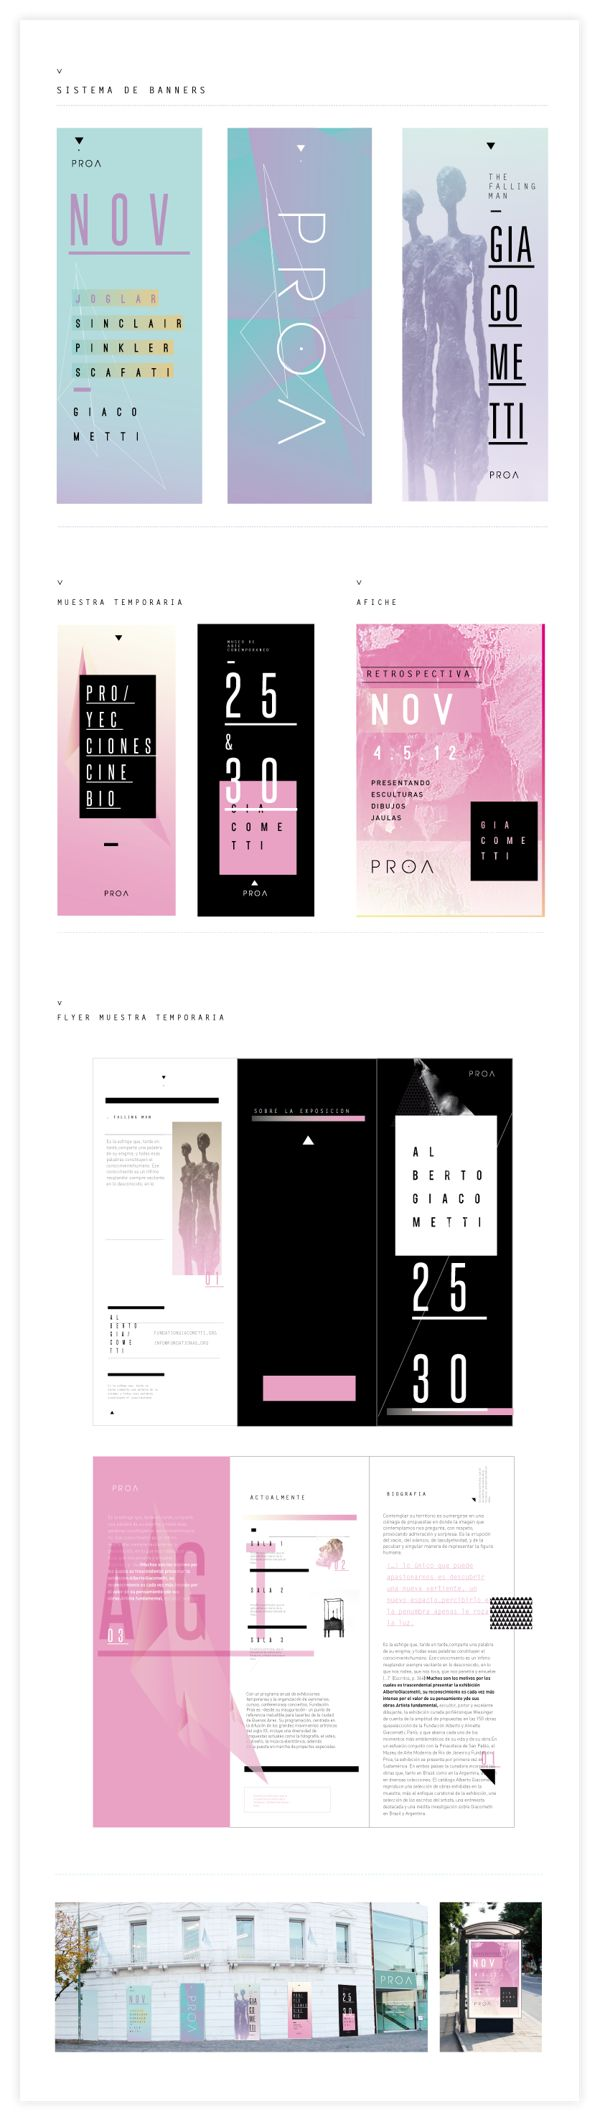 FUNDACIÓN PROA by Alejandra Tramontte, via Behance FLAT DESIGN